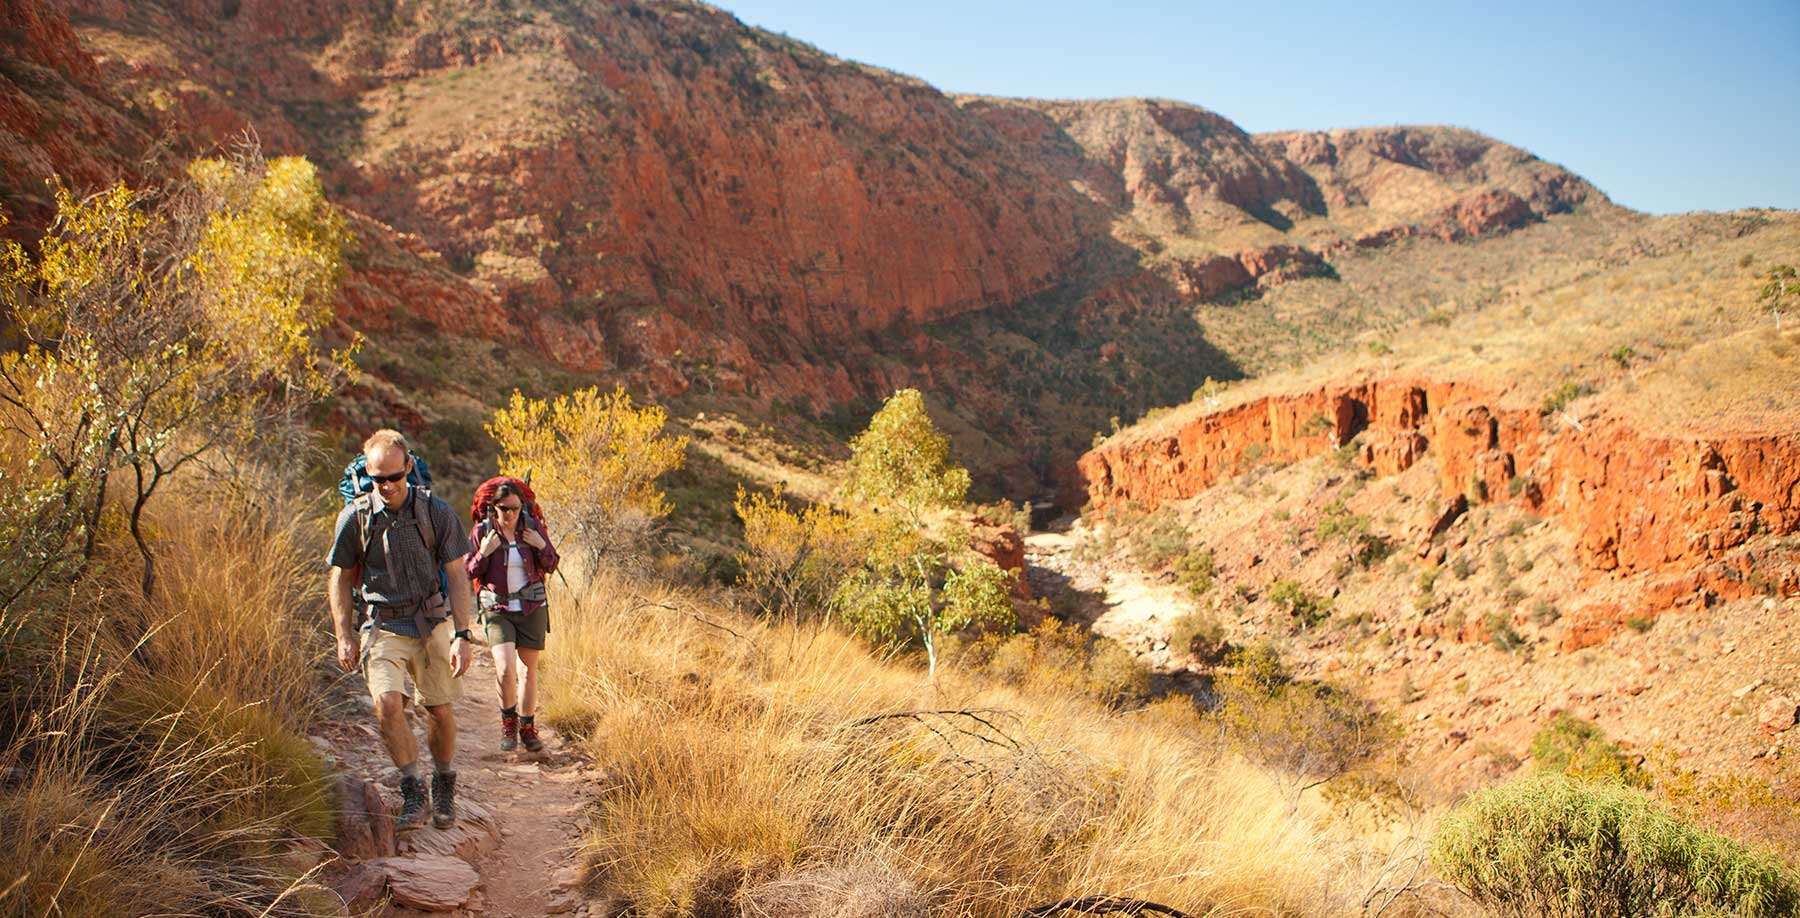 Two people hillwalking in MacDonnell Ranges